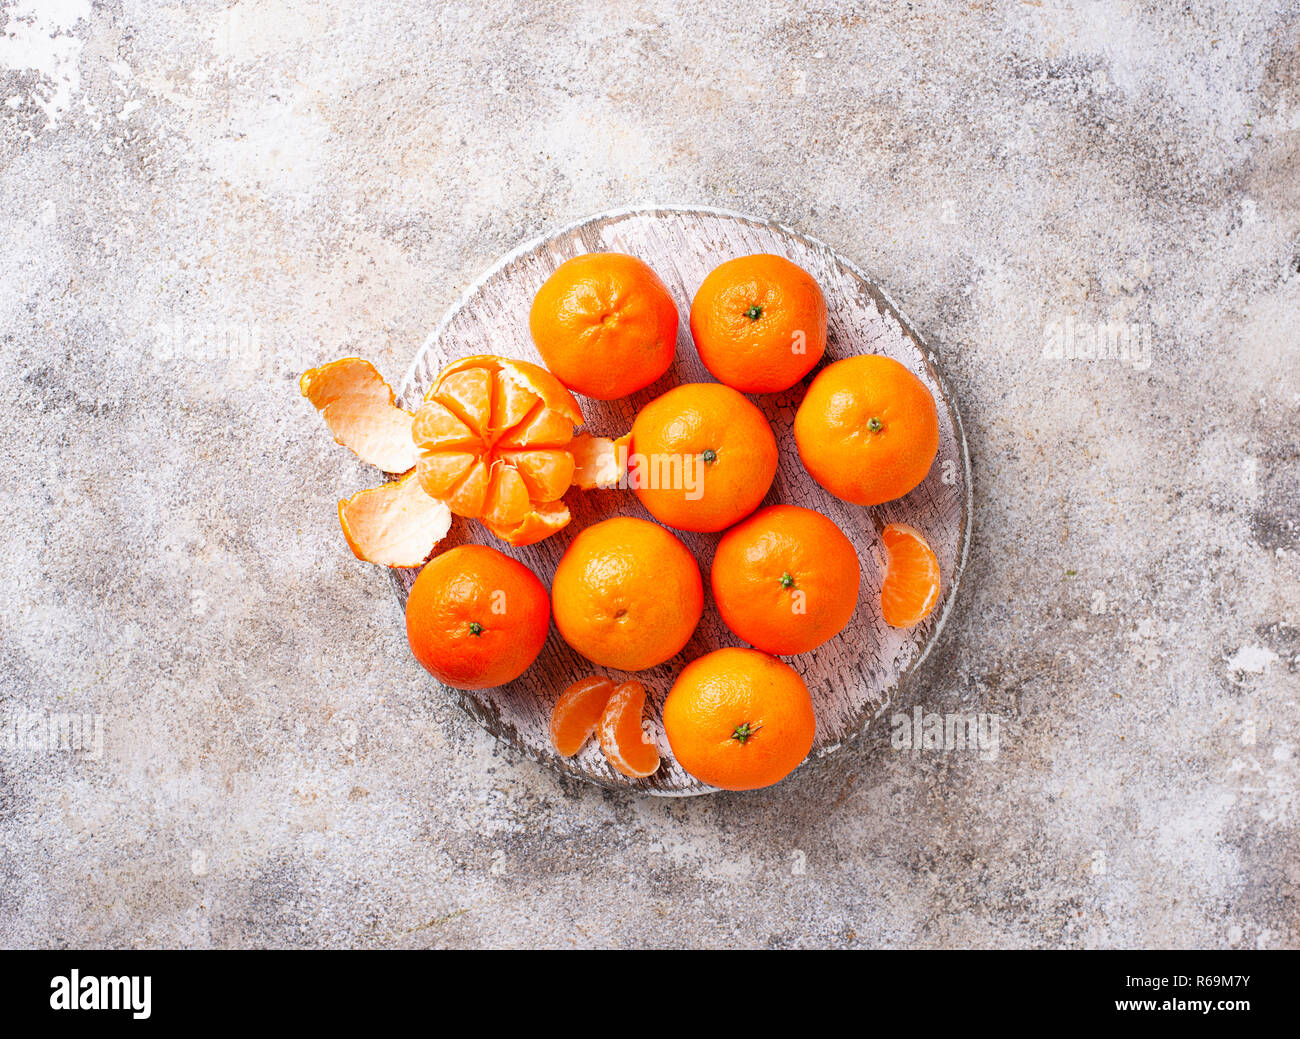 Fresh ripe tangerines on light background - Stock Image